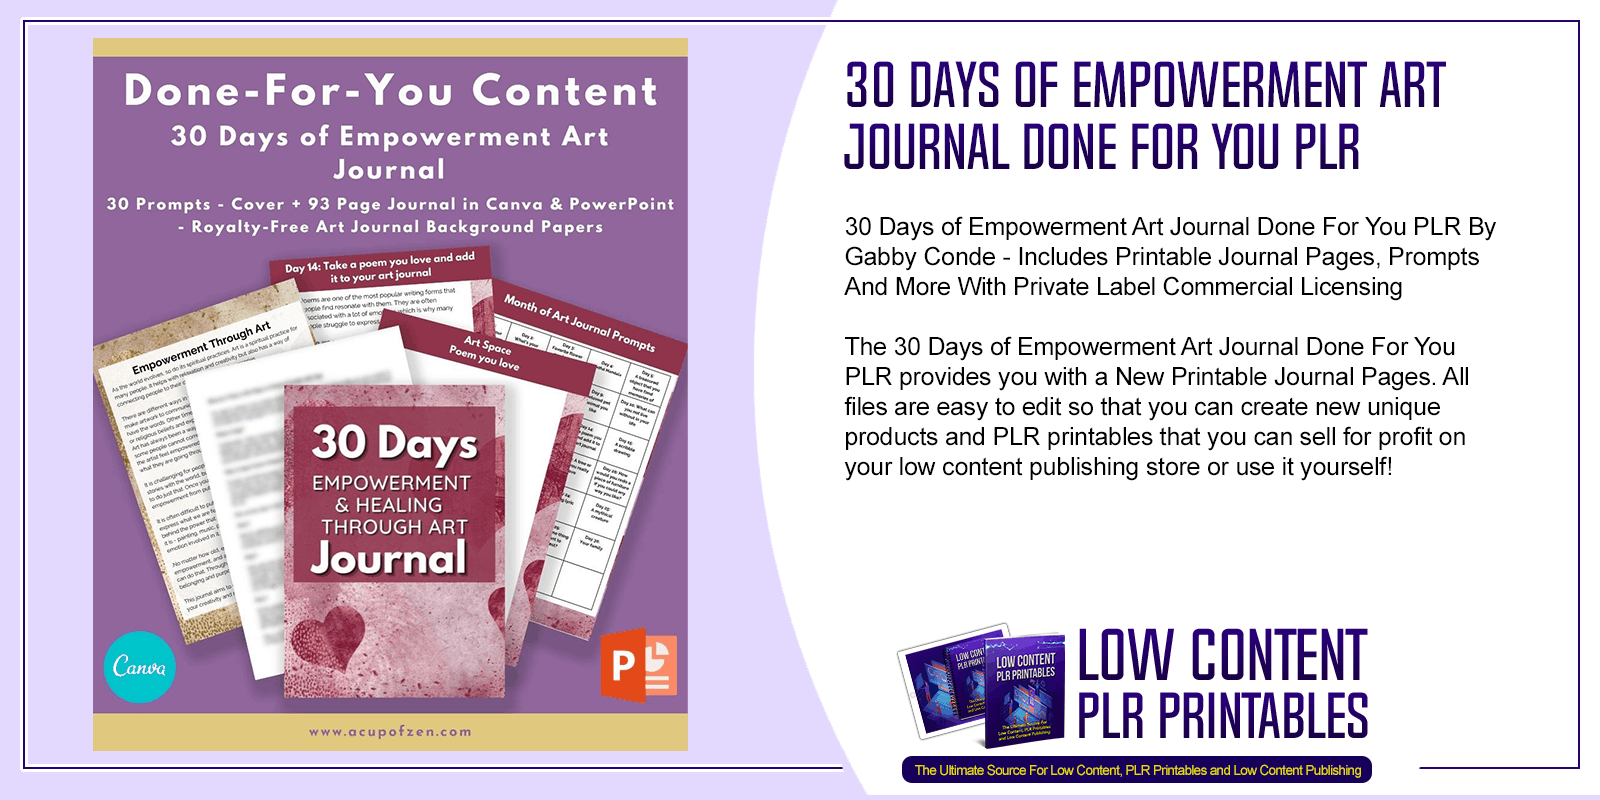 30 Days of Empowerment Art Journal Done For You PLR